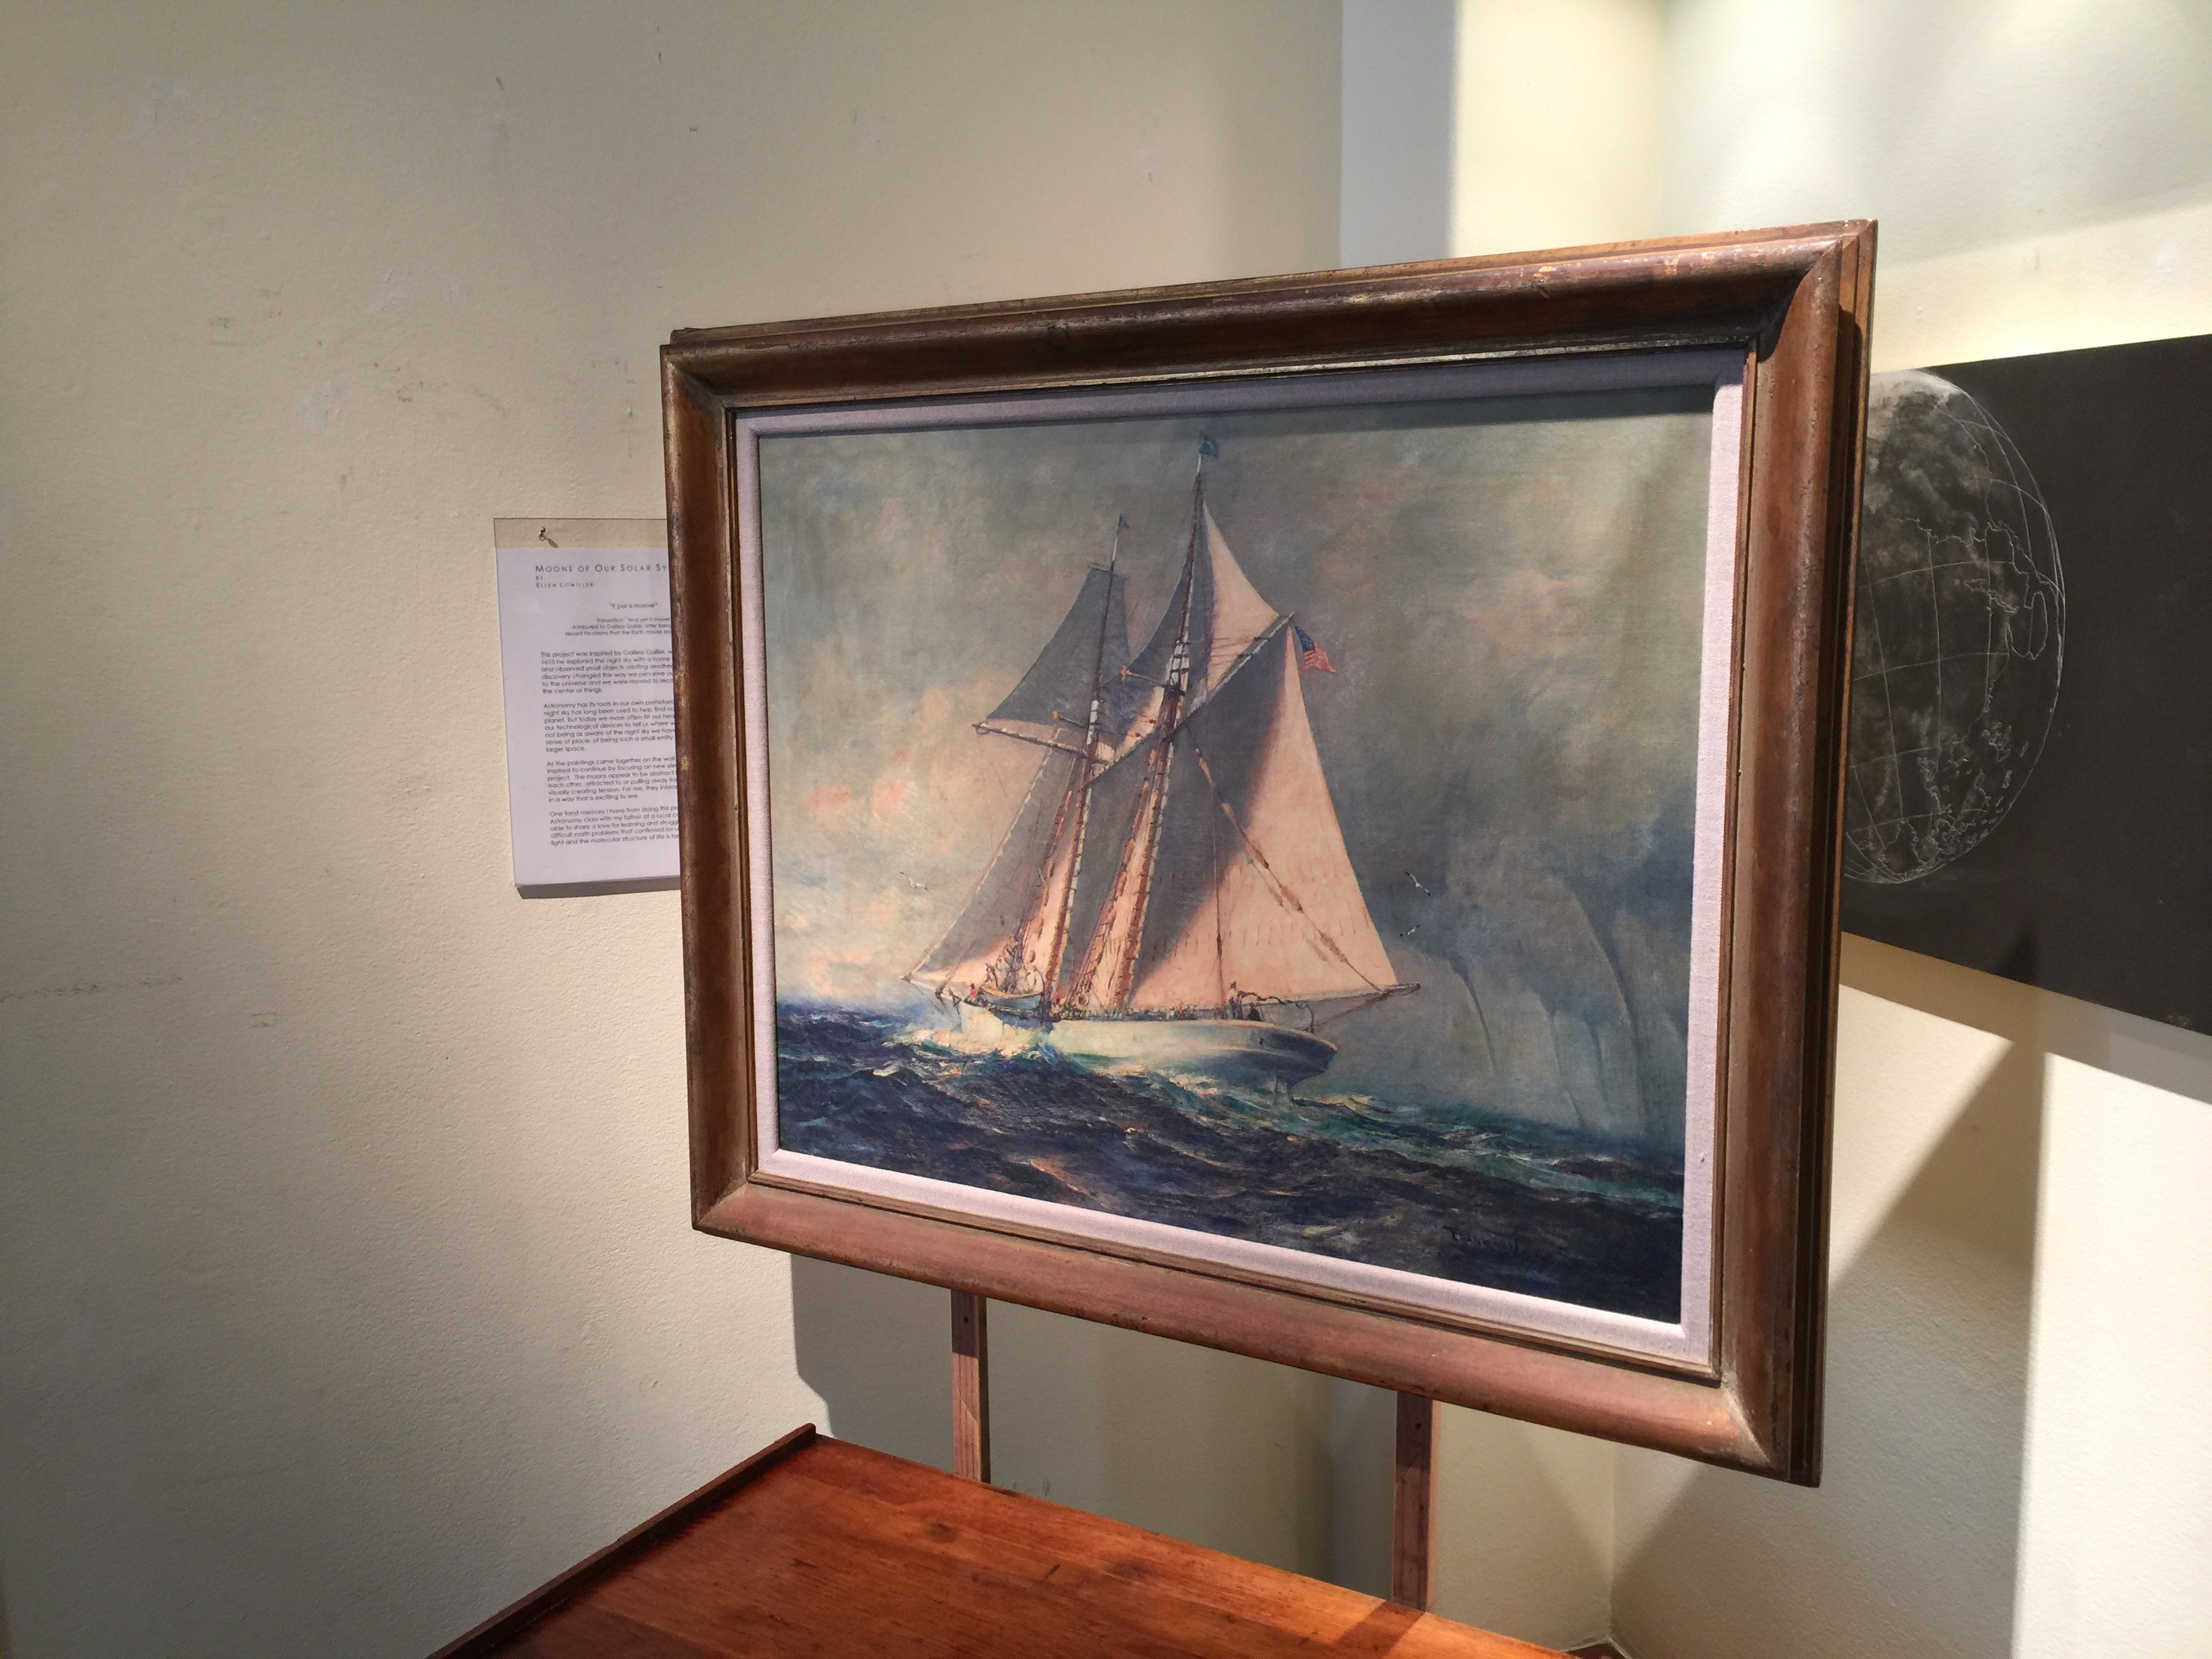 Painting of the Schooner Wander bird